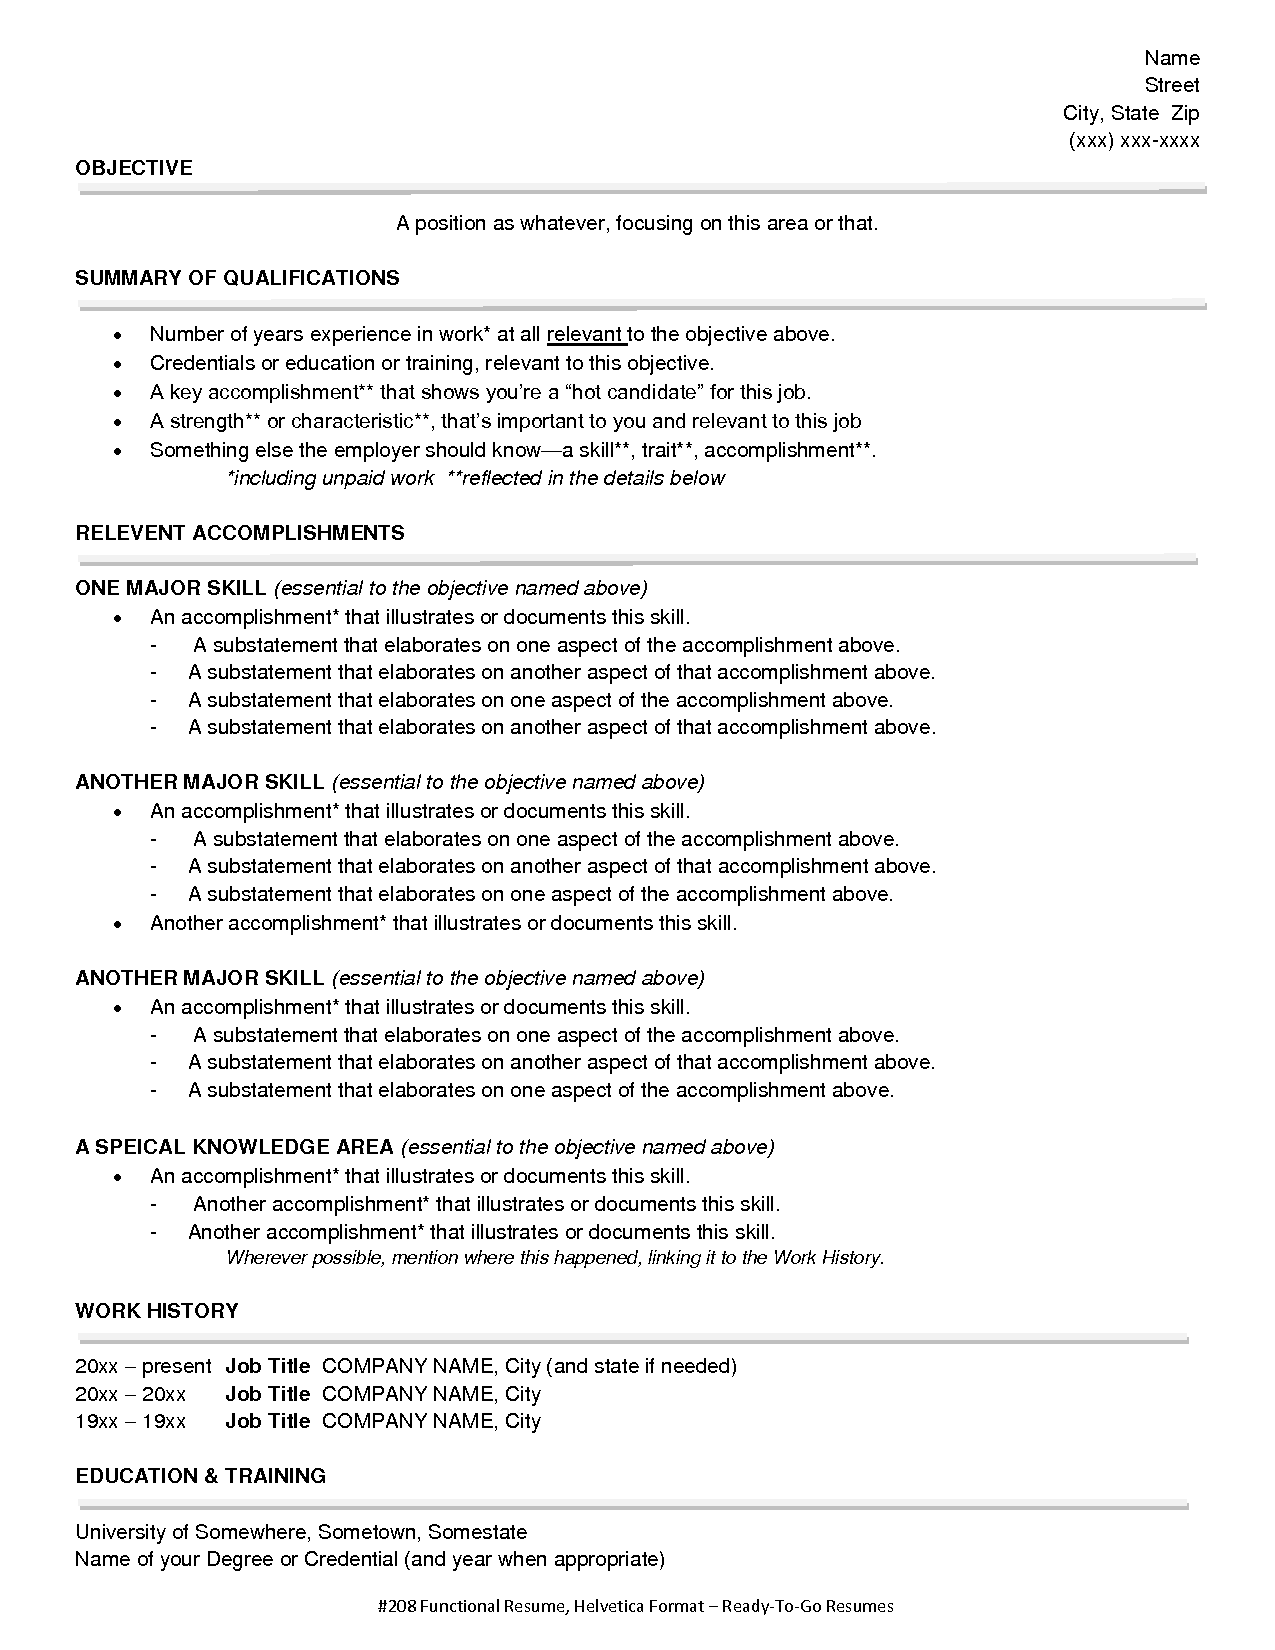 Sample Functional Resume For Nurses Functional Style Resume Sample Functional Resume Style 1